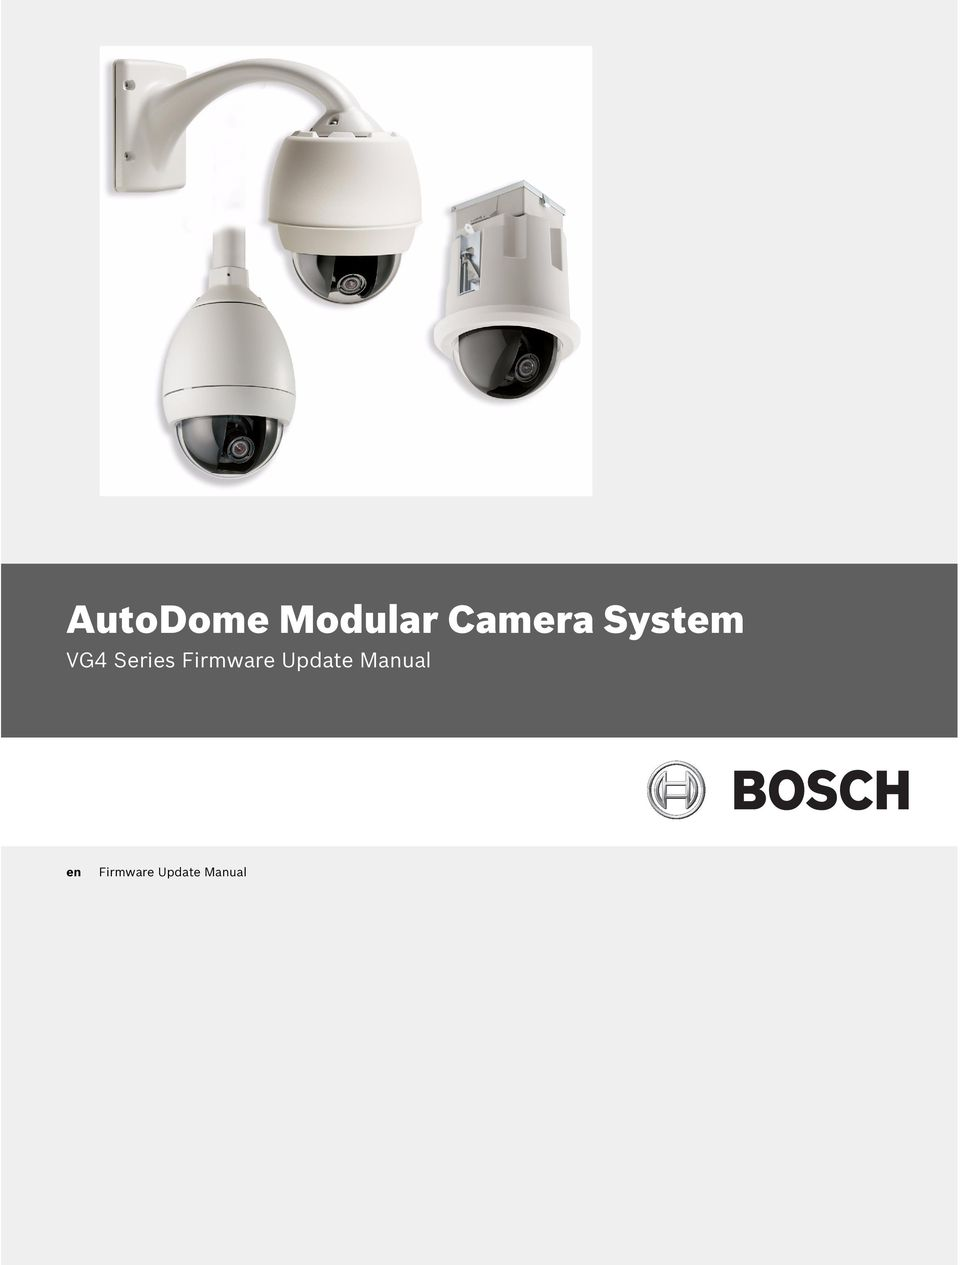 Autodome modular camera system vg4 series firmware update manual series firmware update cheapraybanclubmaster Gallery